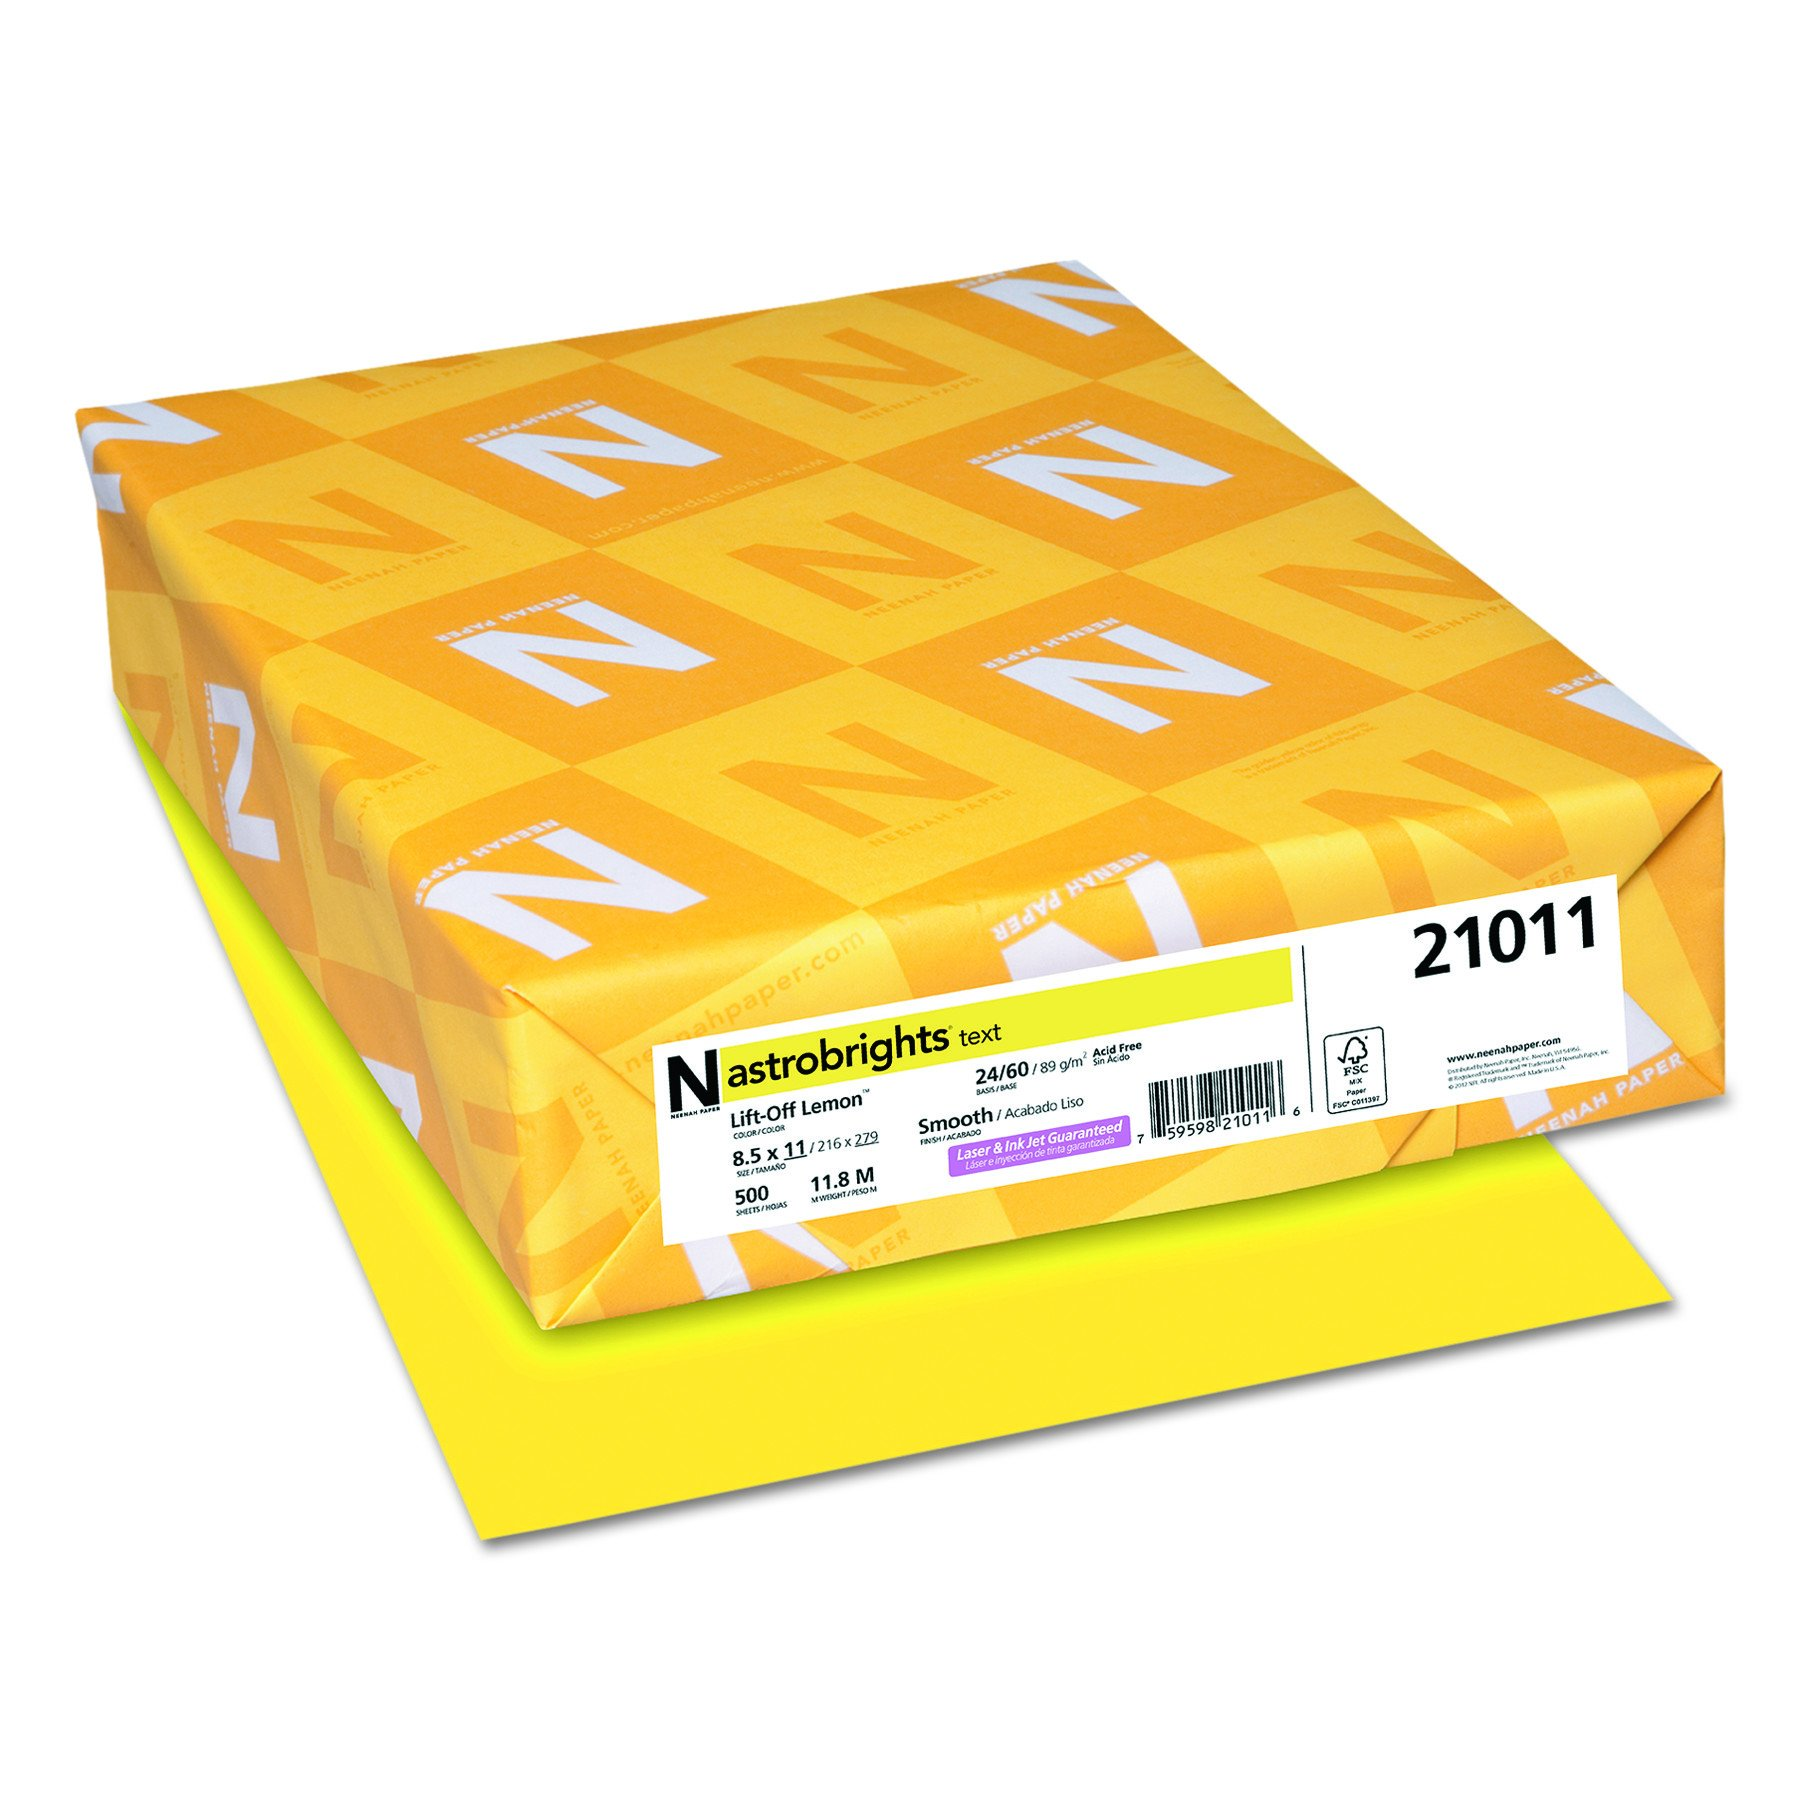 Wausau Astrobrights Heavy Duty Paper, 24 lb, 8.5 x 11 Inches, Lift-Off Lemon, 500 Sheets (22631)